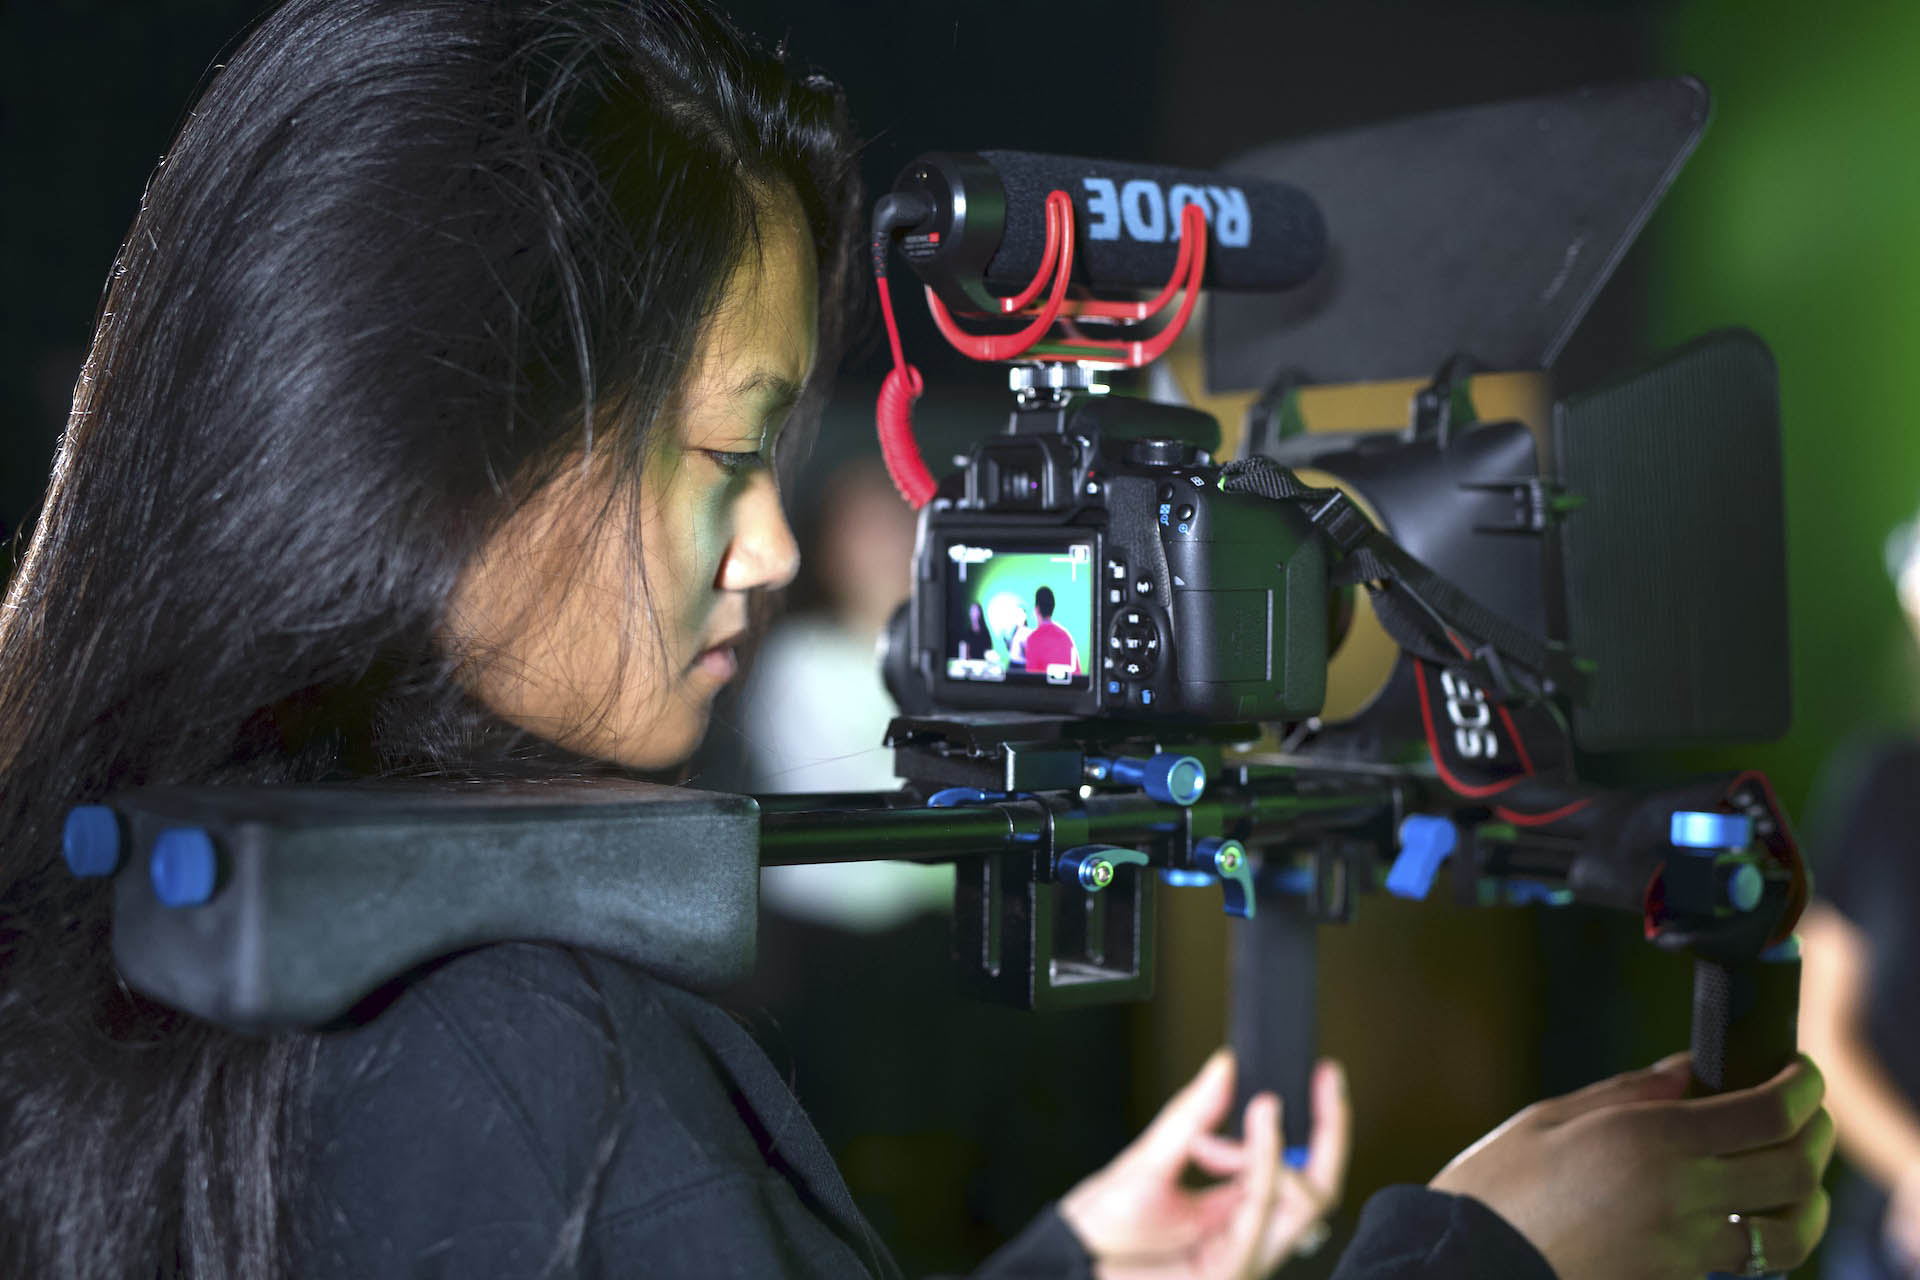 VoTech students practices filming